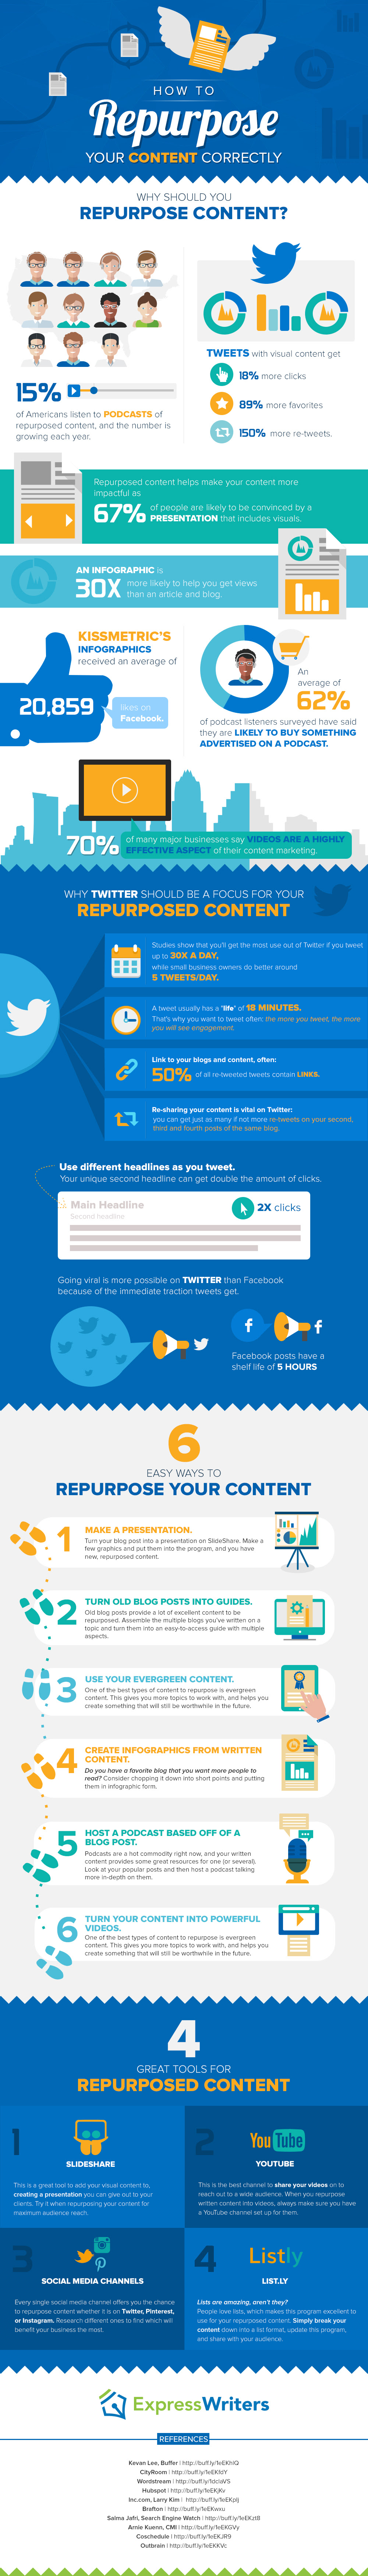 How To Reuse and Recycle Your Content To Attract New Visitors (Infographic)